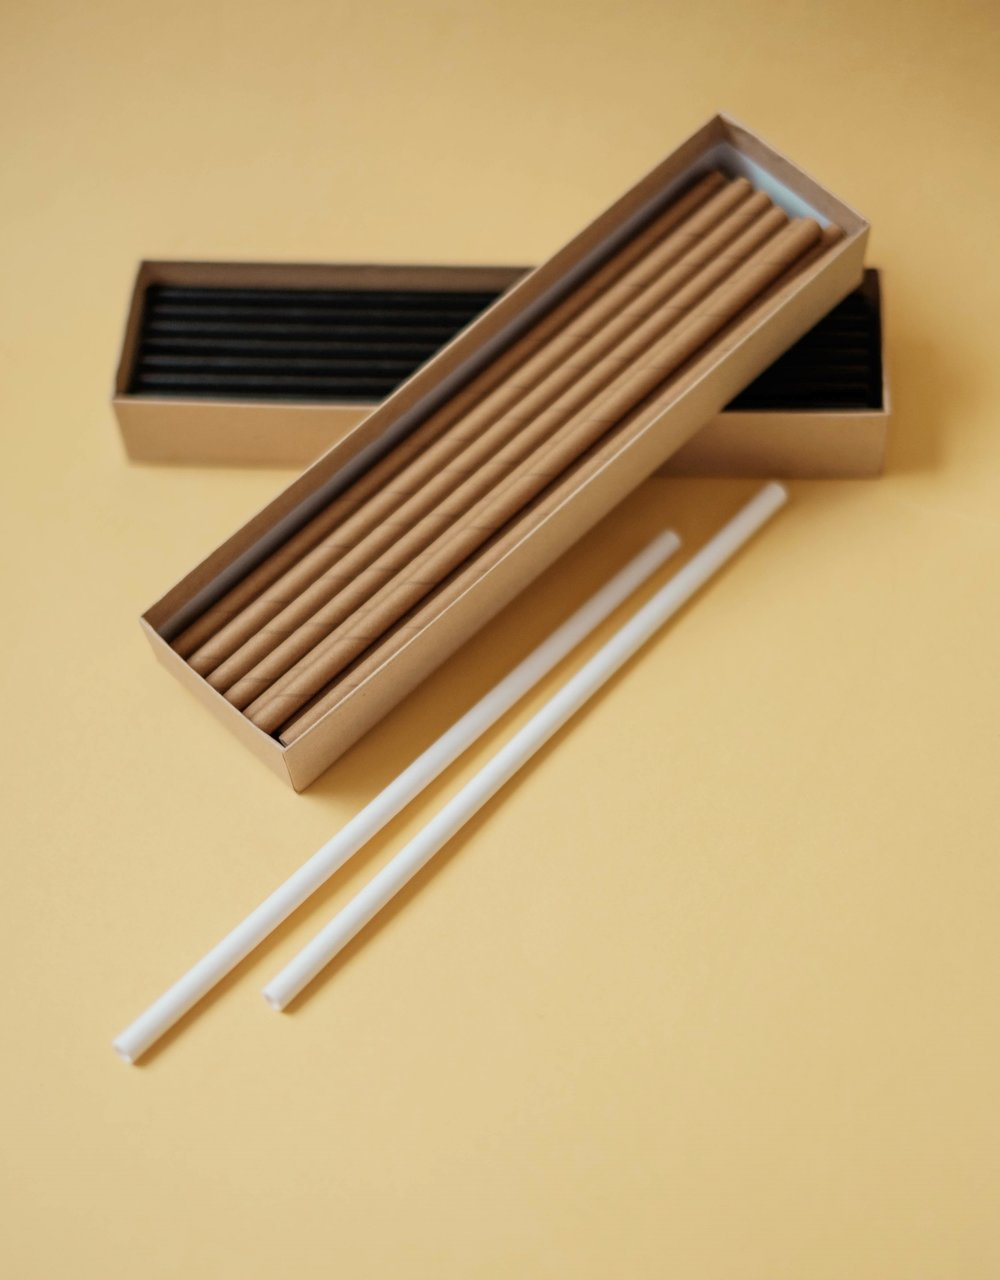 Your first 50 straws, delivered free - Yes, seriously. Your first 50 straws delivered to your establishment for free. Gain that user feedback and let us know how it goes — we're trying to work together here! A plastic-free world won't happen by ourselves, so fill out the form below if you're an interested restaurant, distributor,or promotional business.